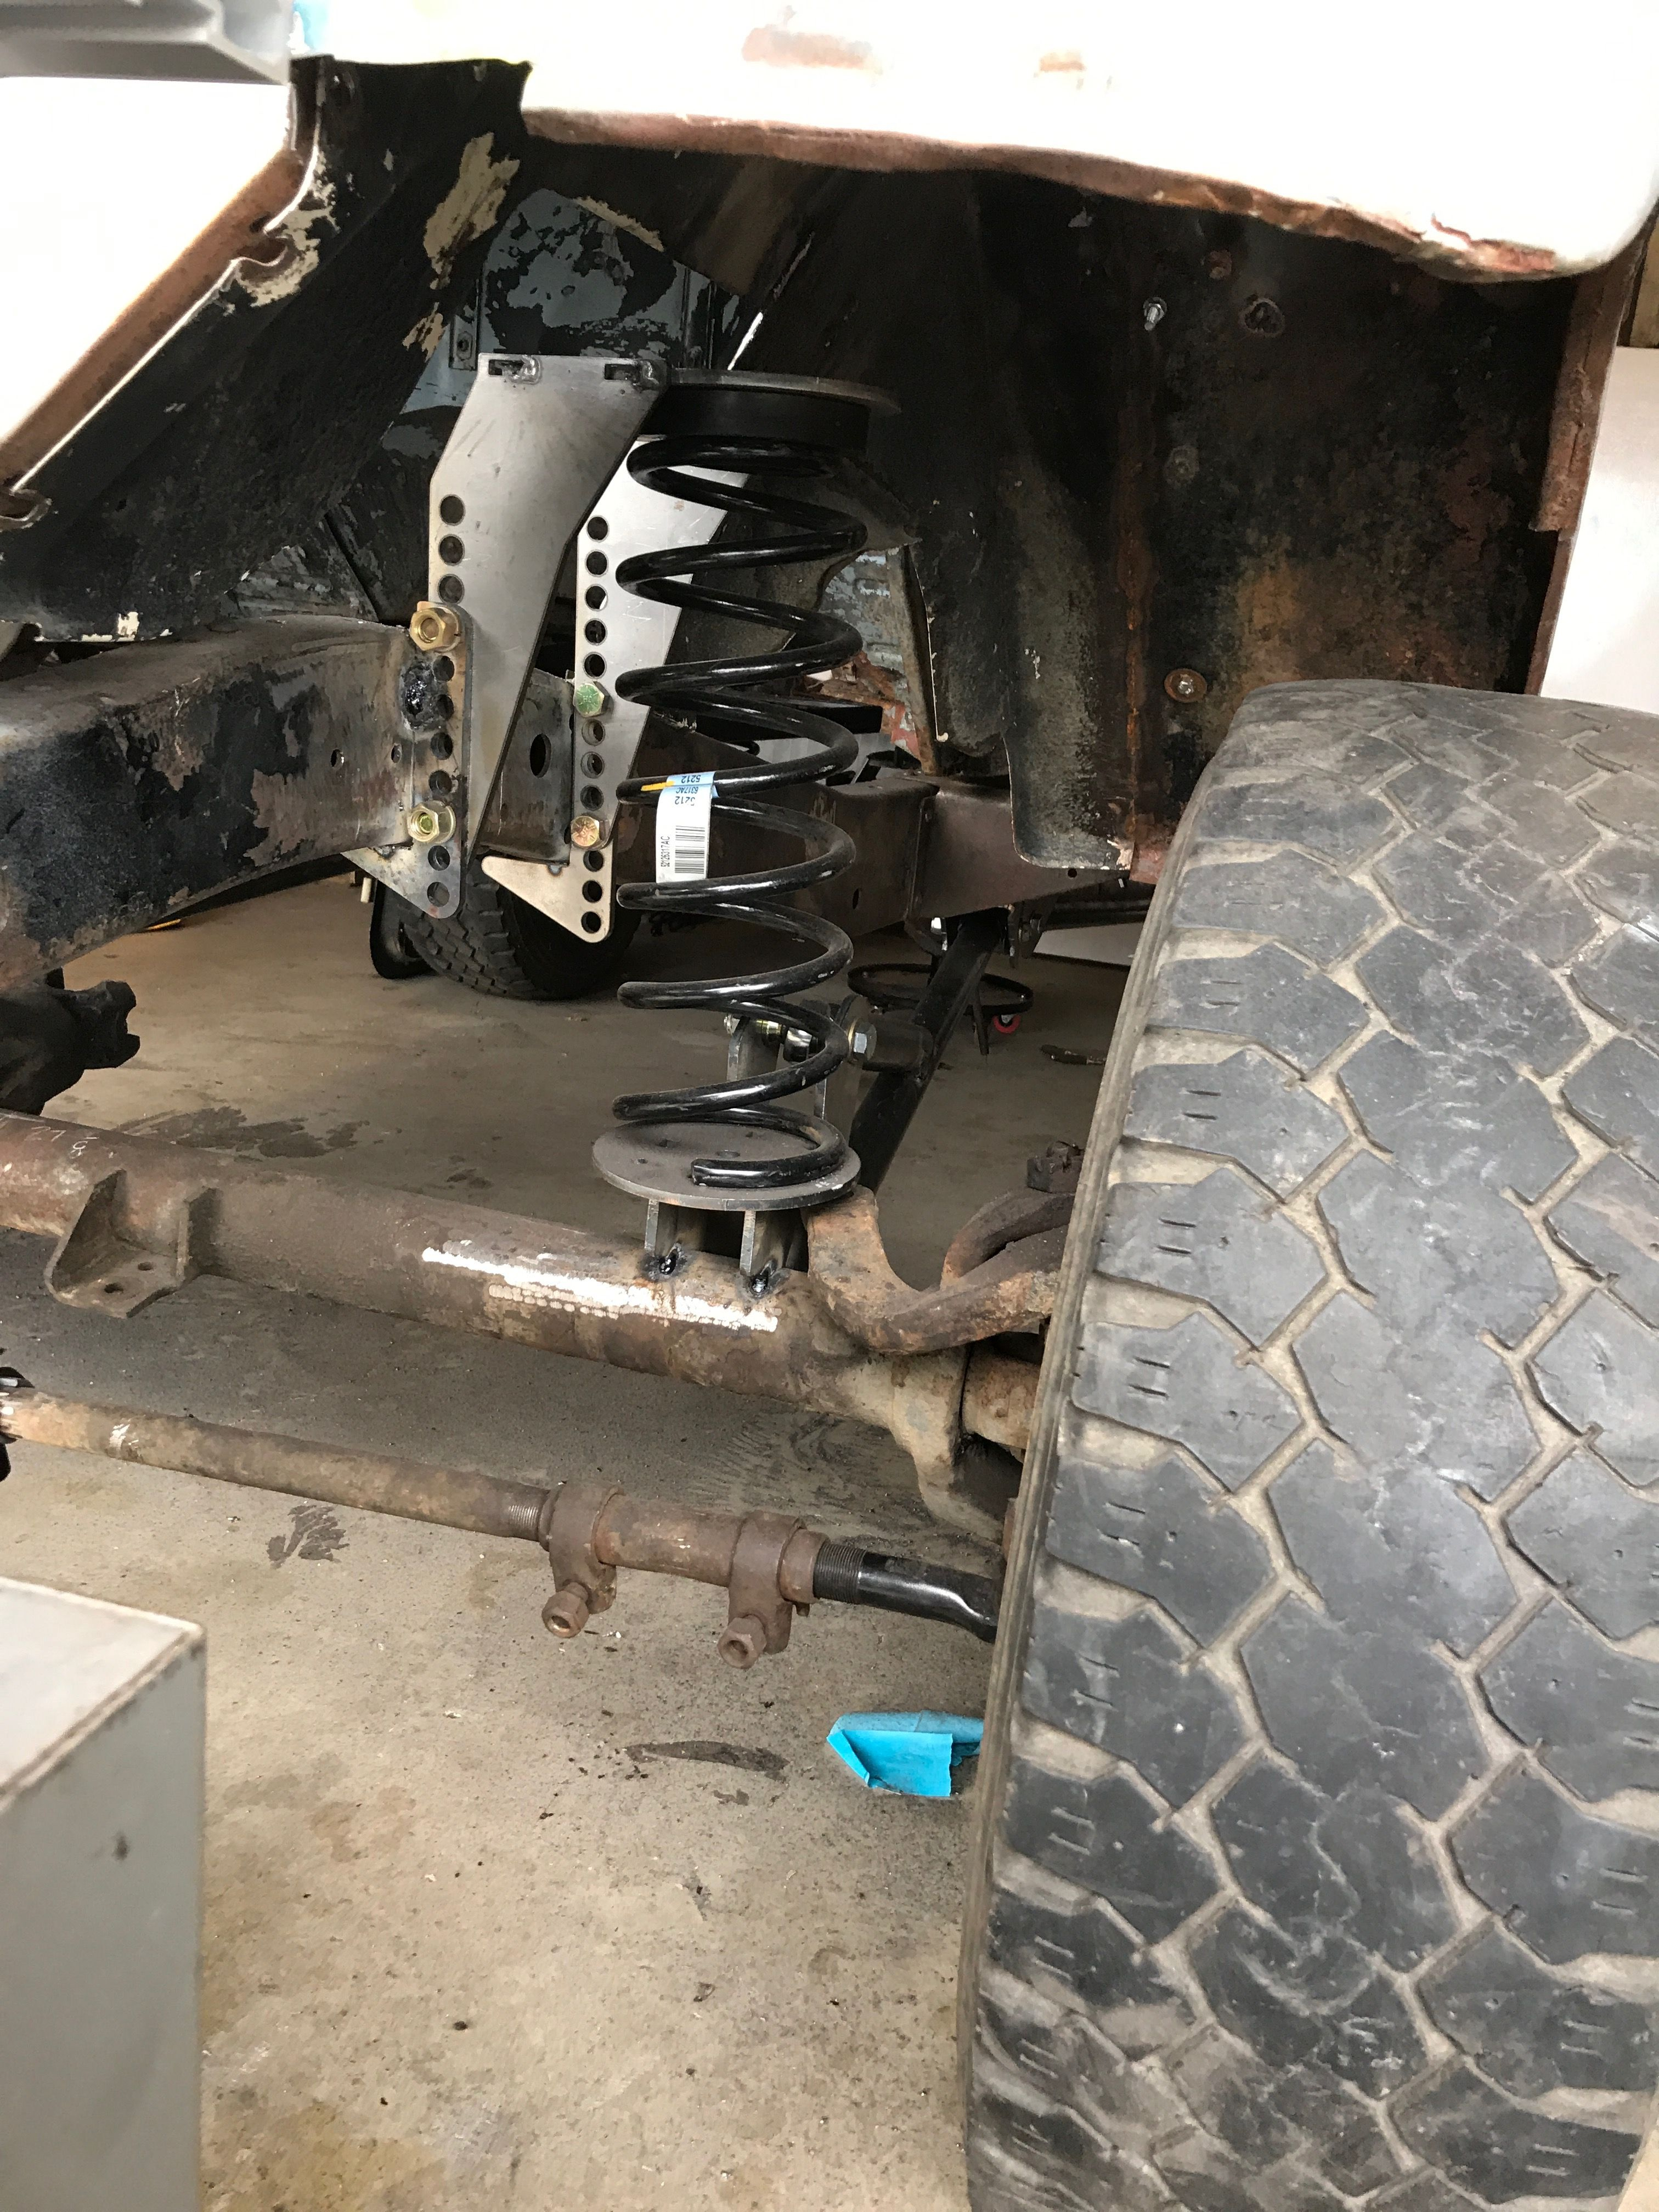 fj40 coil spring conversion with a long arm 3link kit